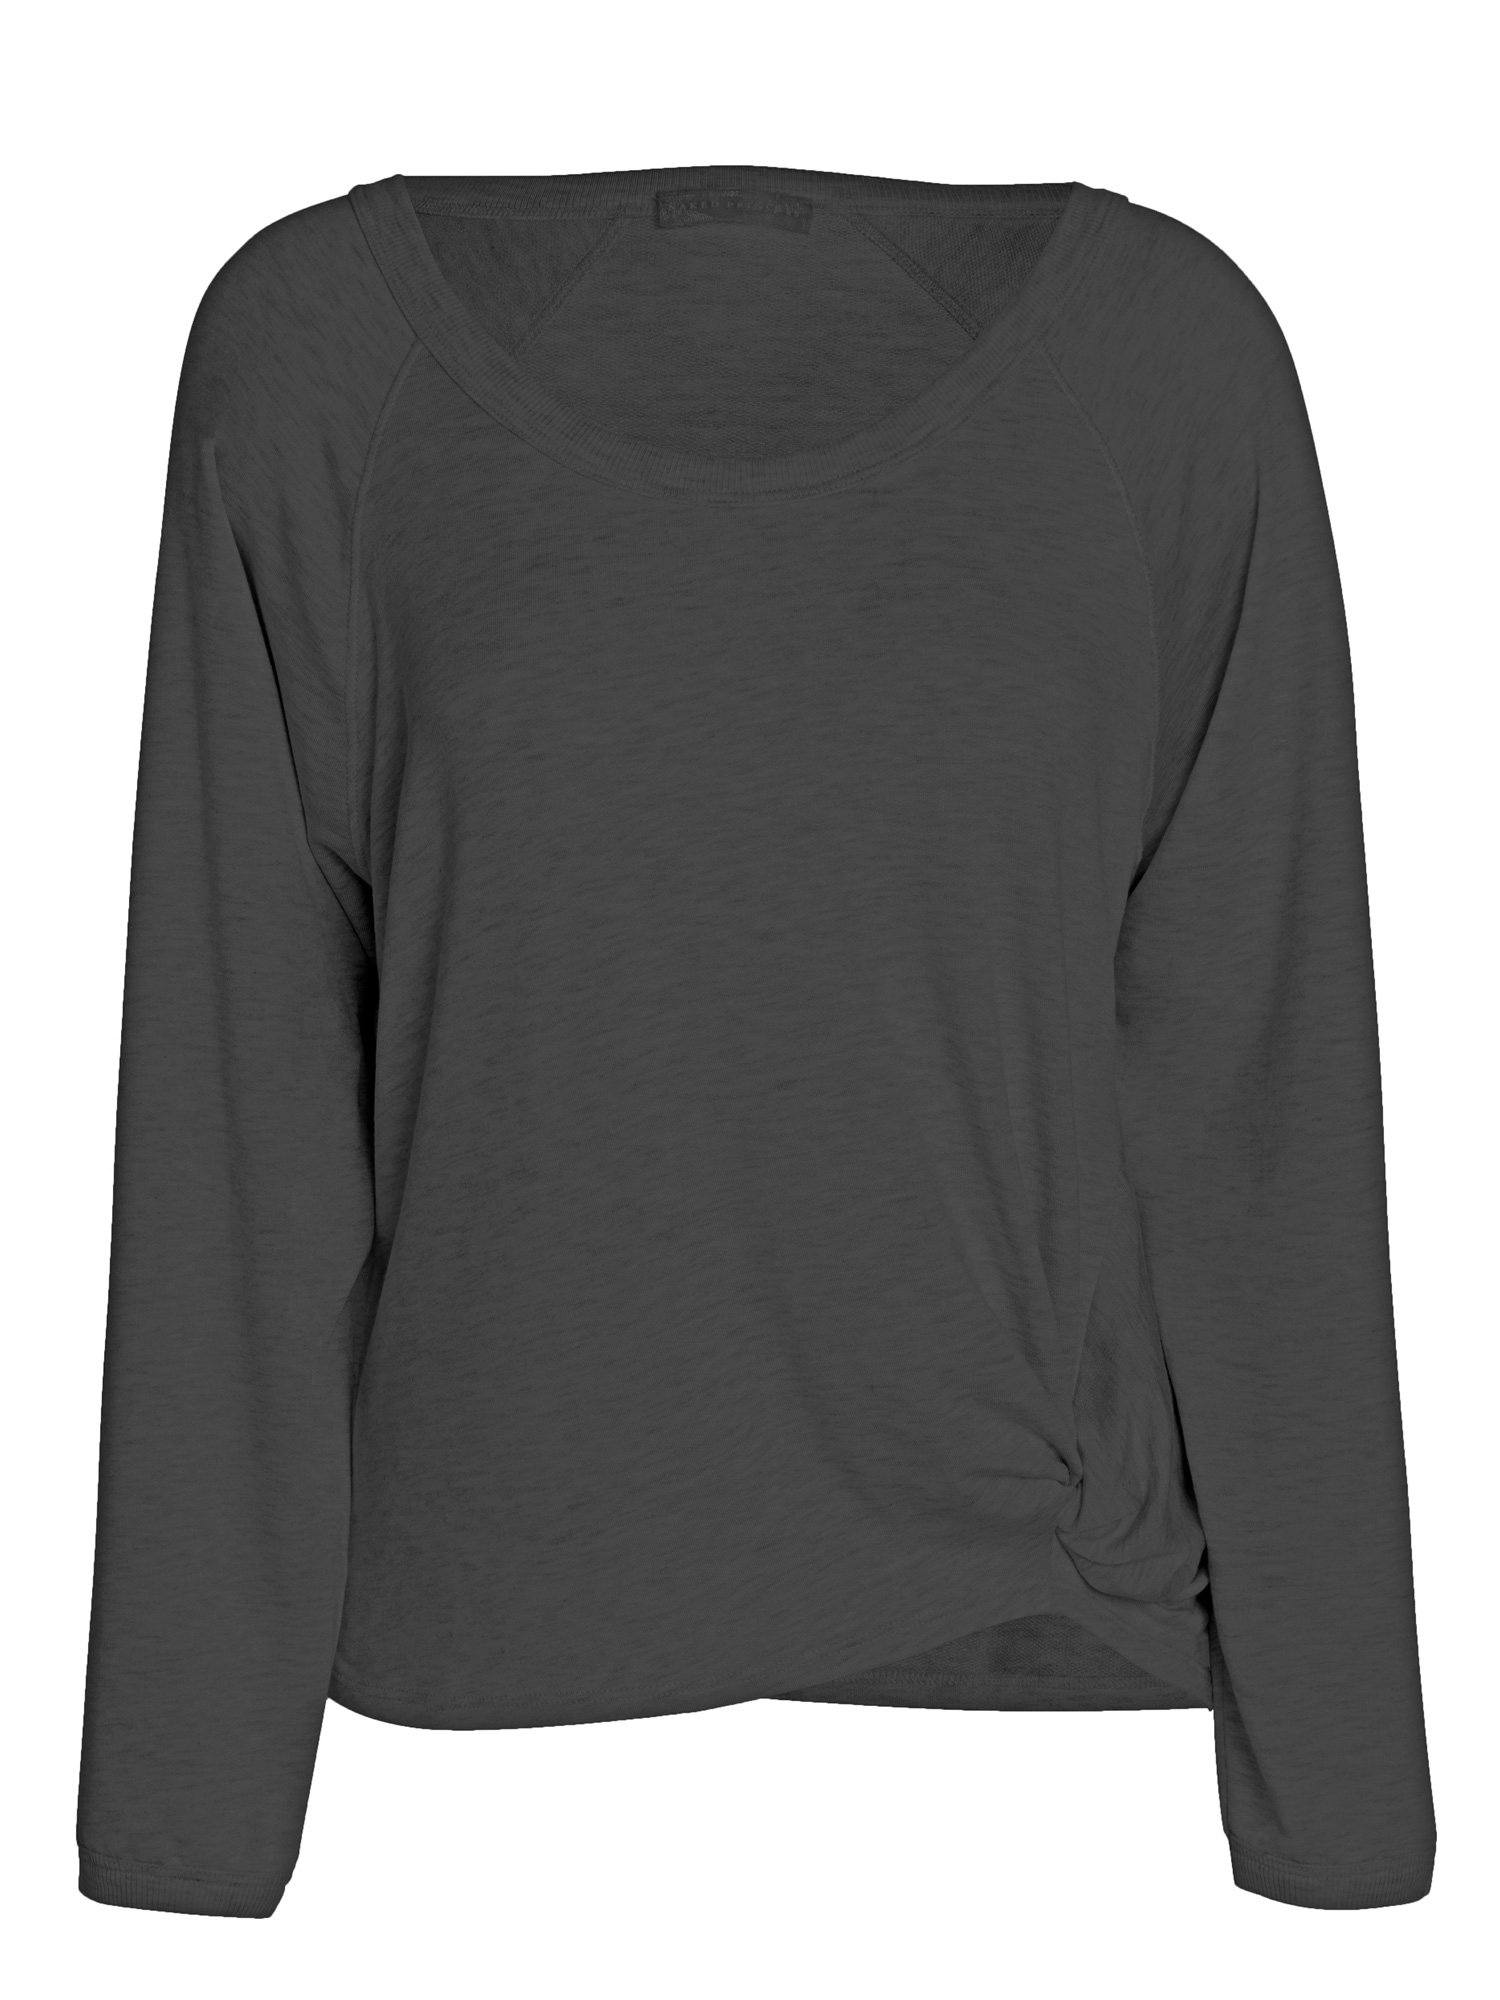 Ava Twist Raglan Tops by Le Marché by NP